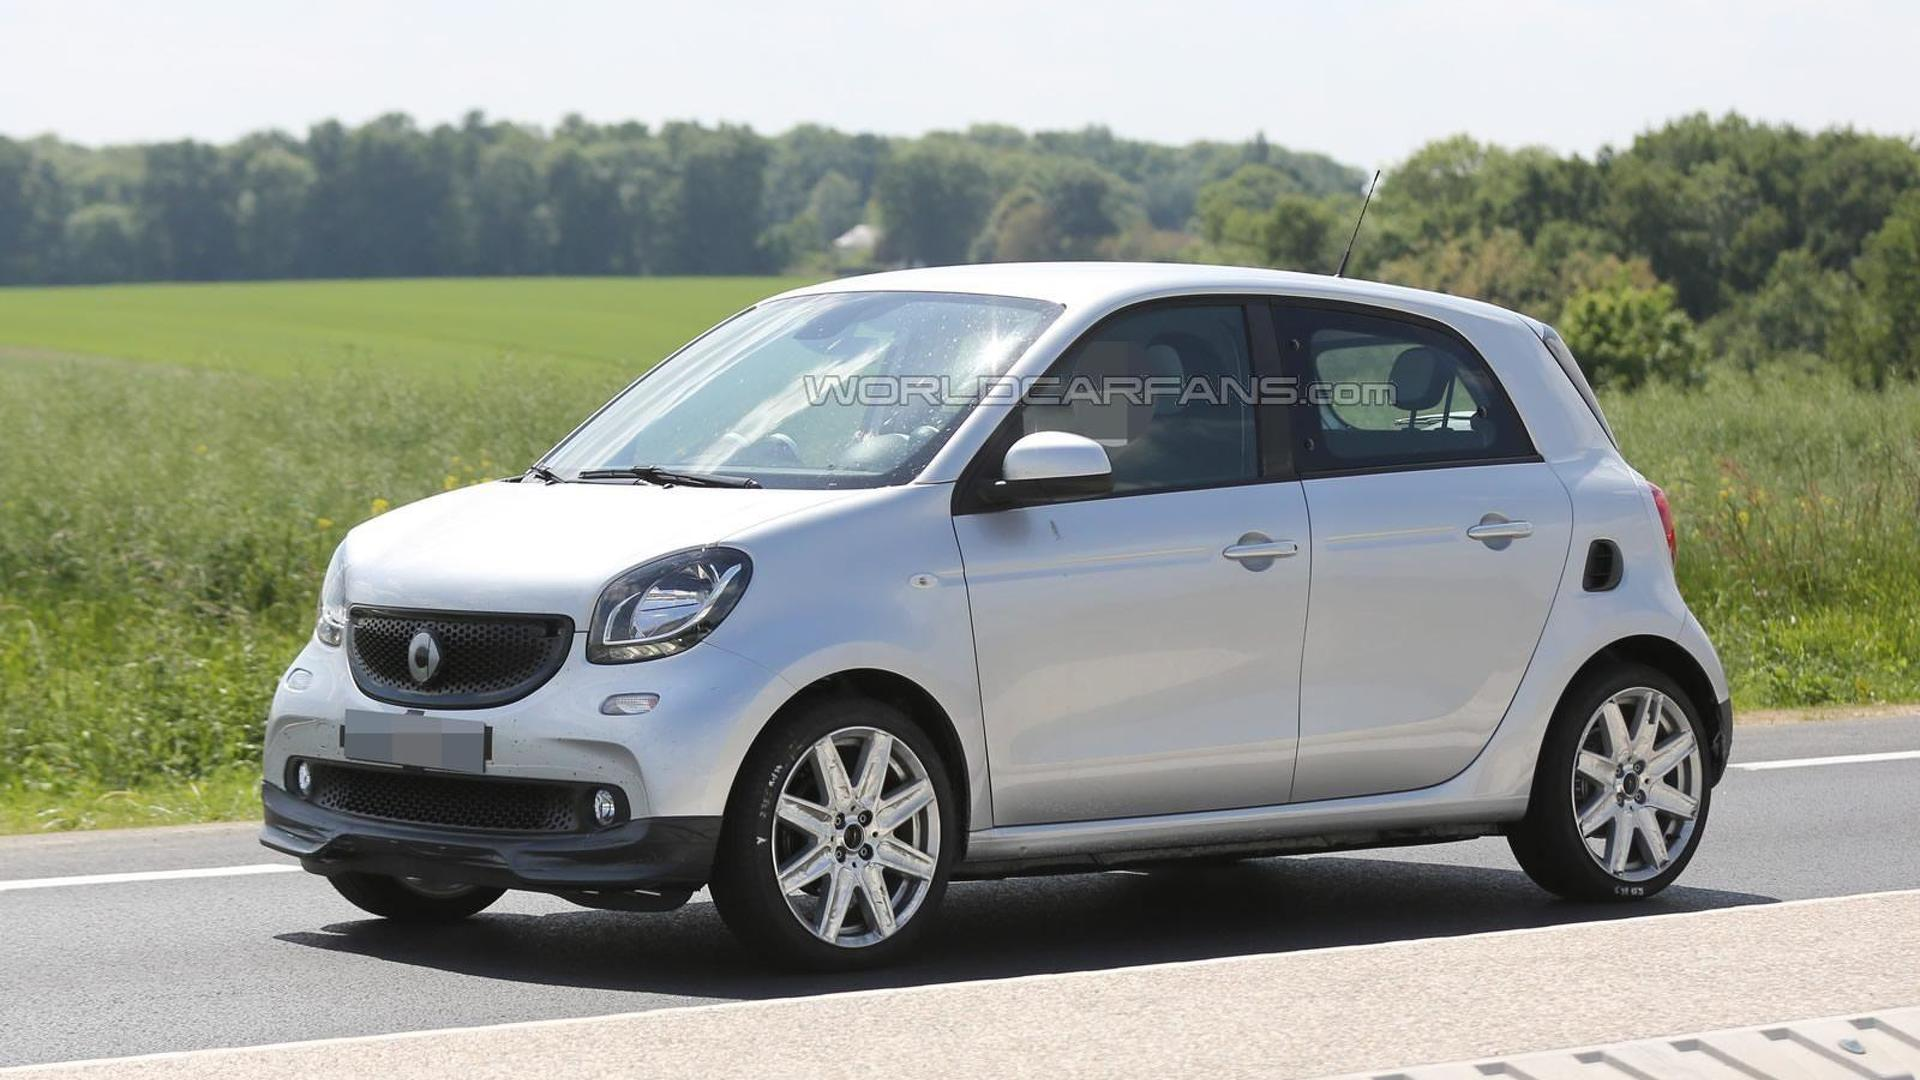 2016 Smart ForFour by Brabus makes spy photo debut